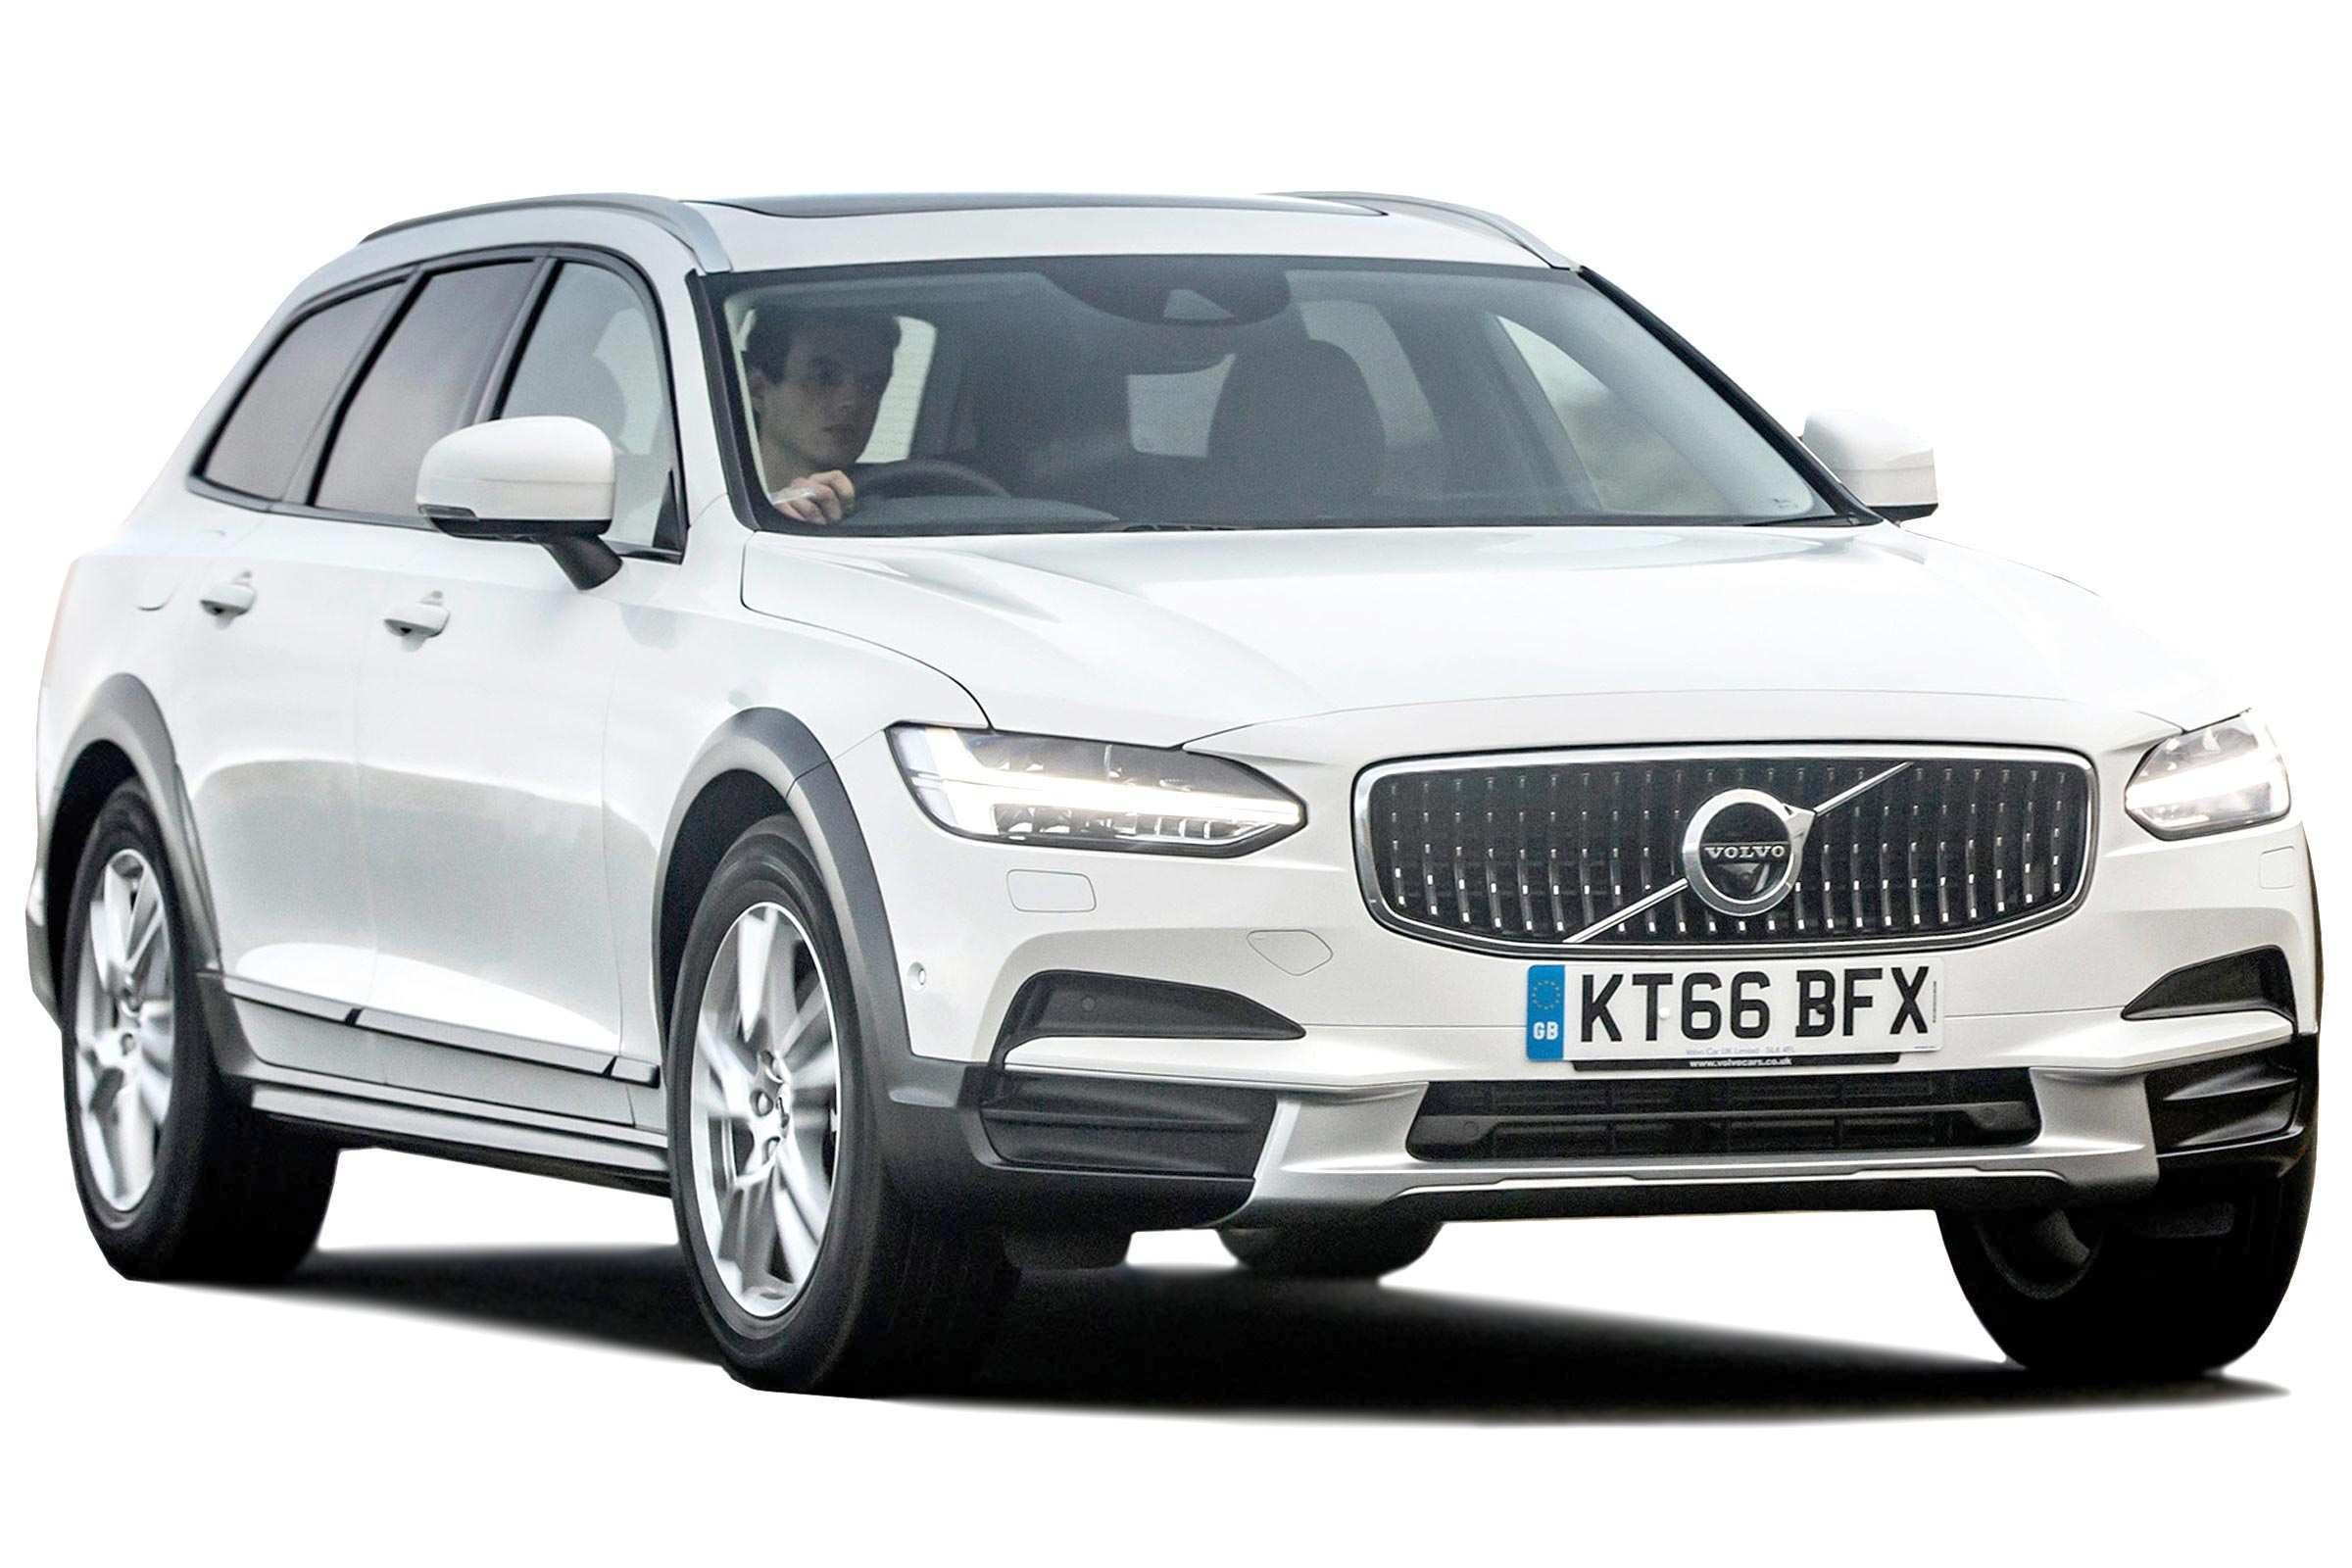 11 Concept of Volvo V90 Cross Country 2020 Rumors for Volvo V90 Cross Country 2020